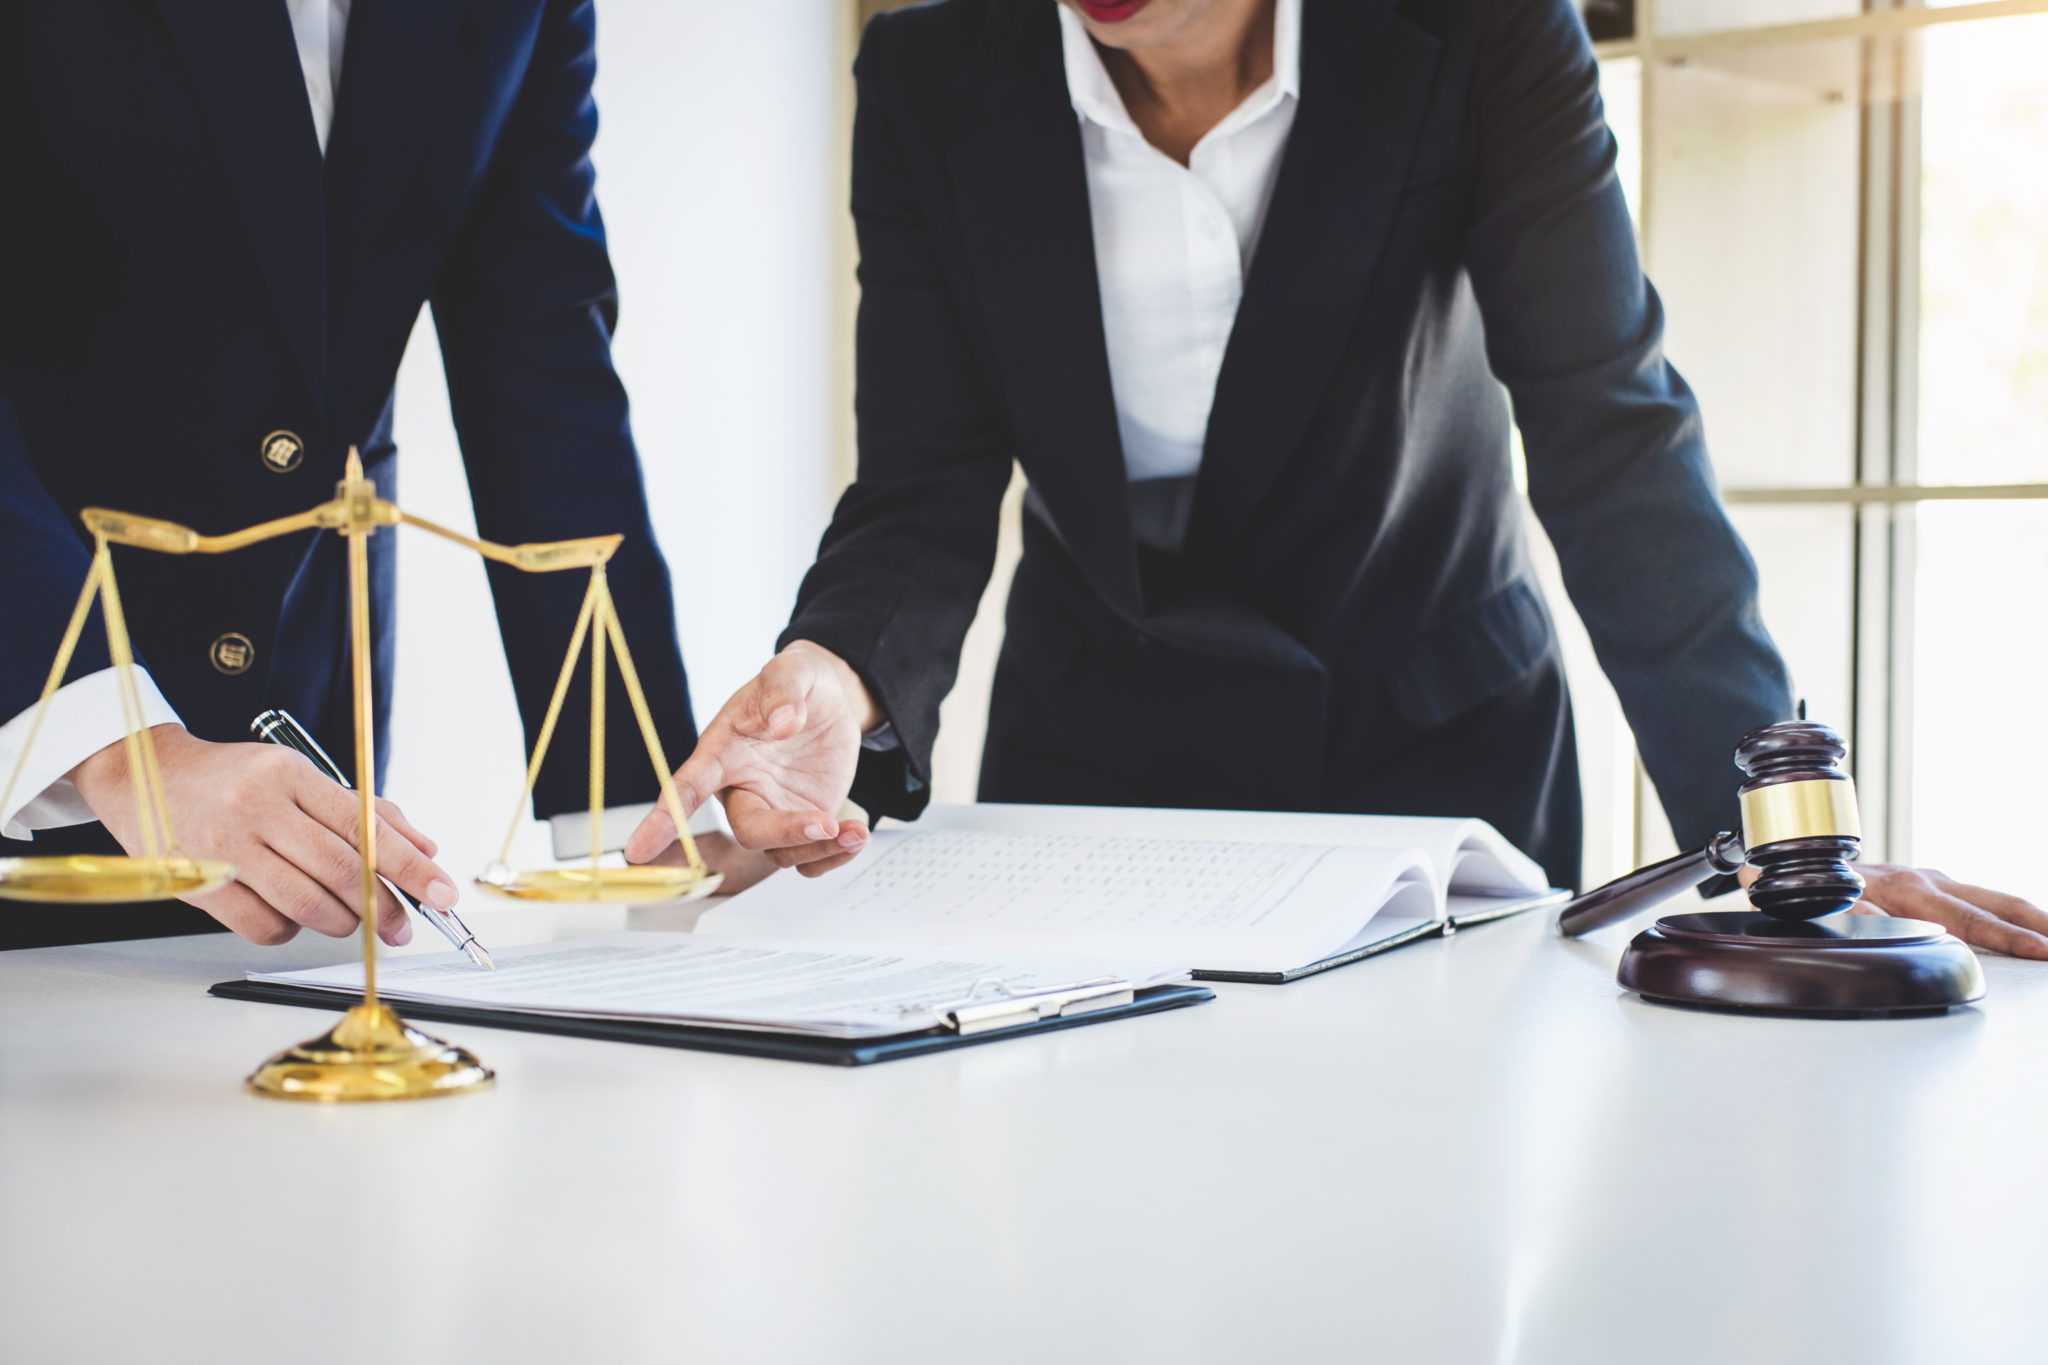 Whats Best For You Public Defender Or A Private Lawyer